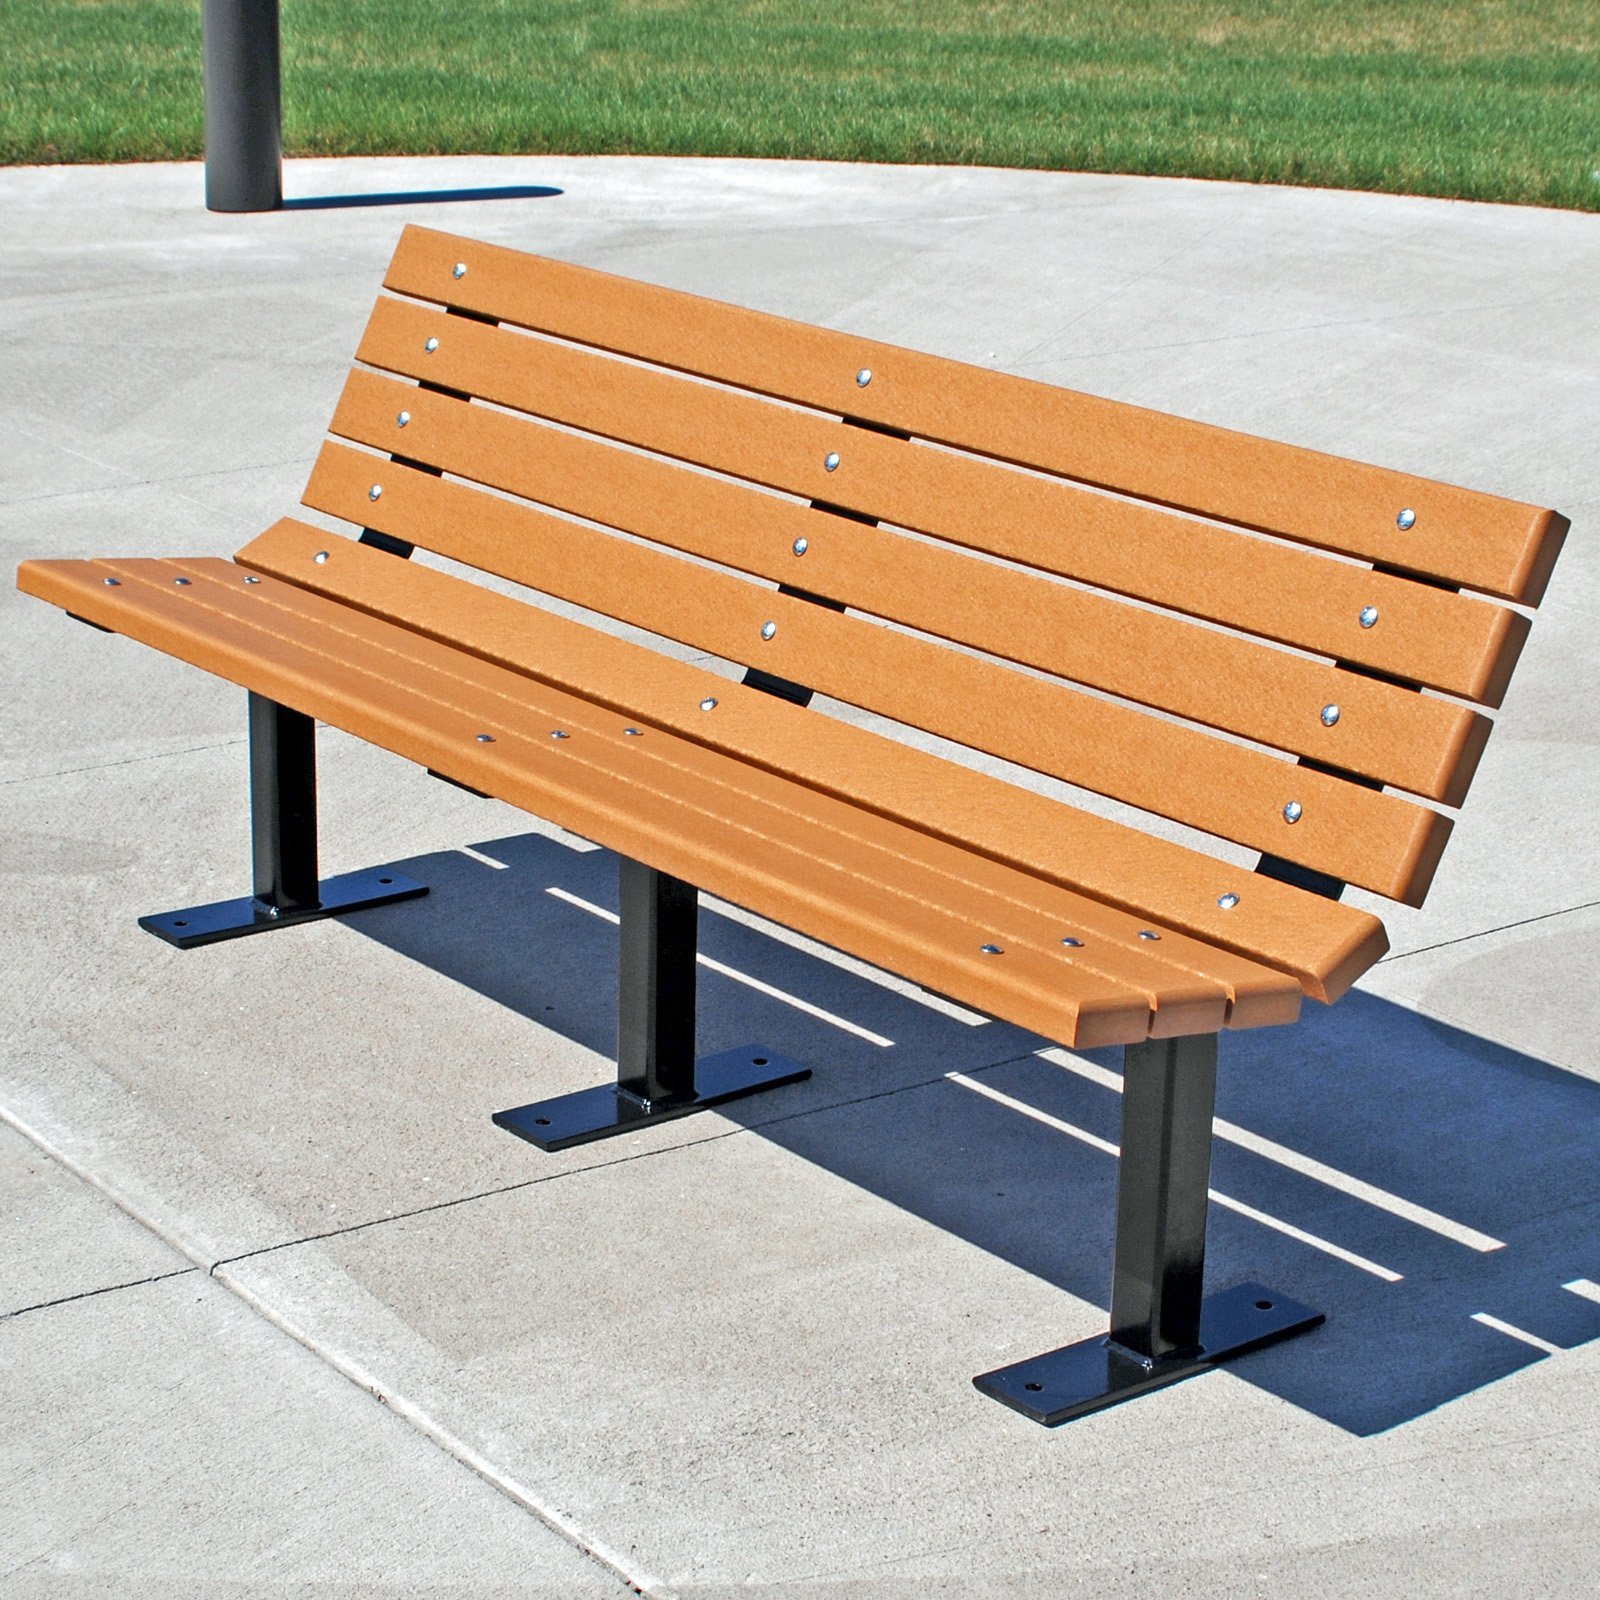 Jayhawk Plastics Contour Park Bench - 4 ft. -  Green - Surface. Mount